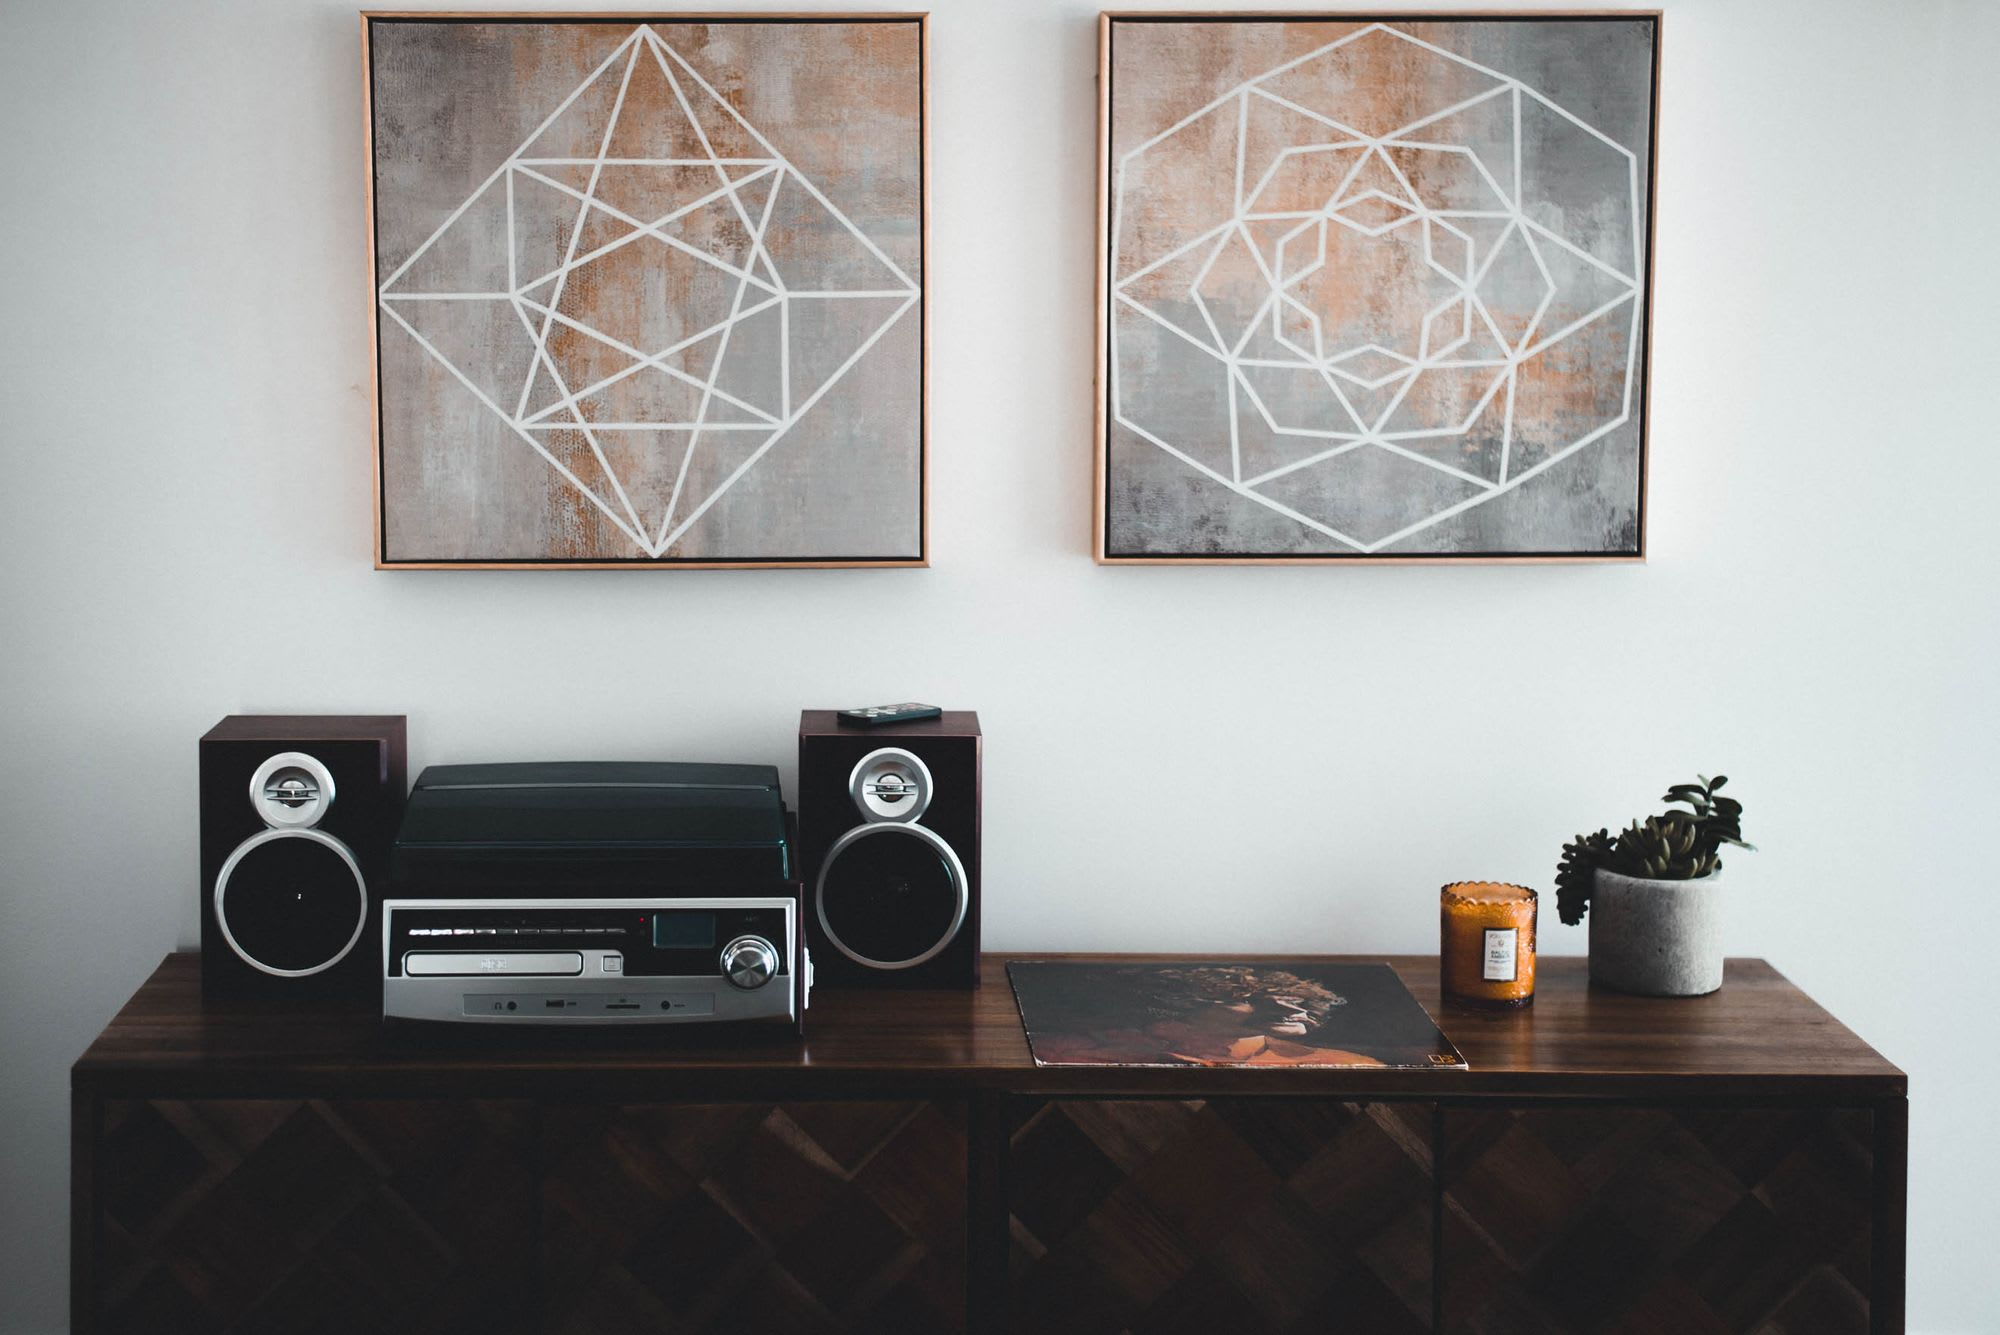 Home decor tips from sound